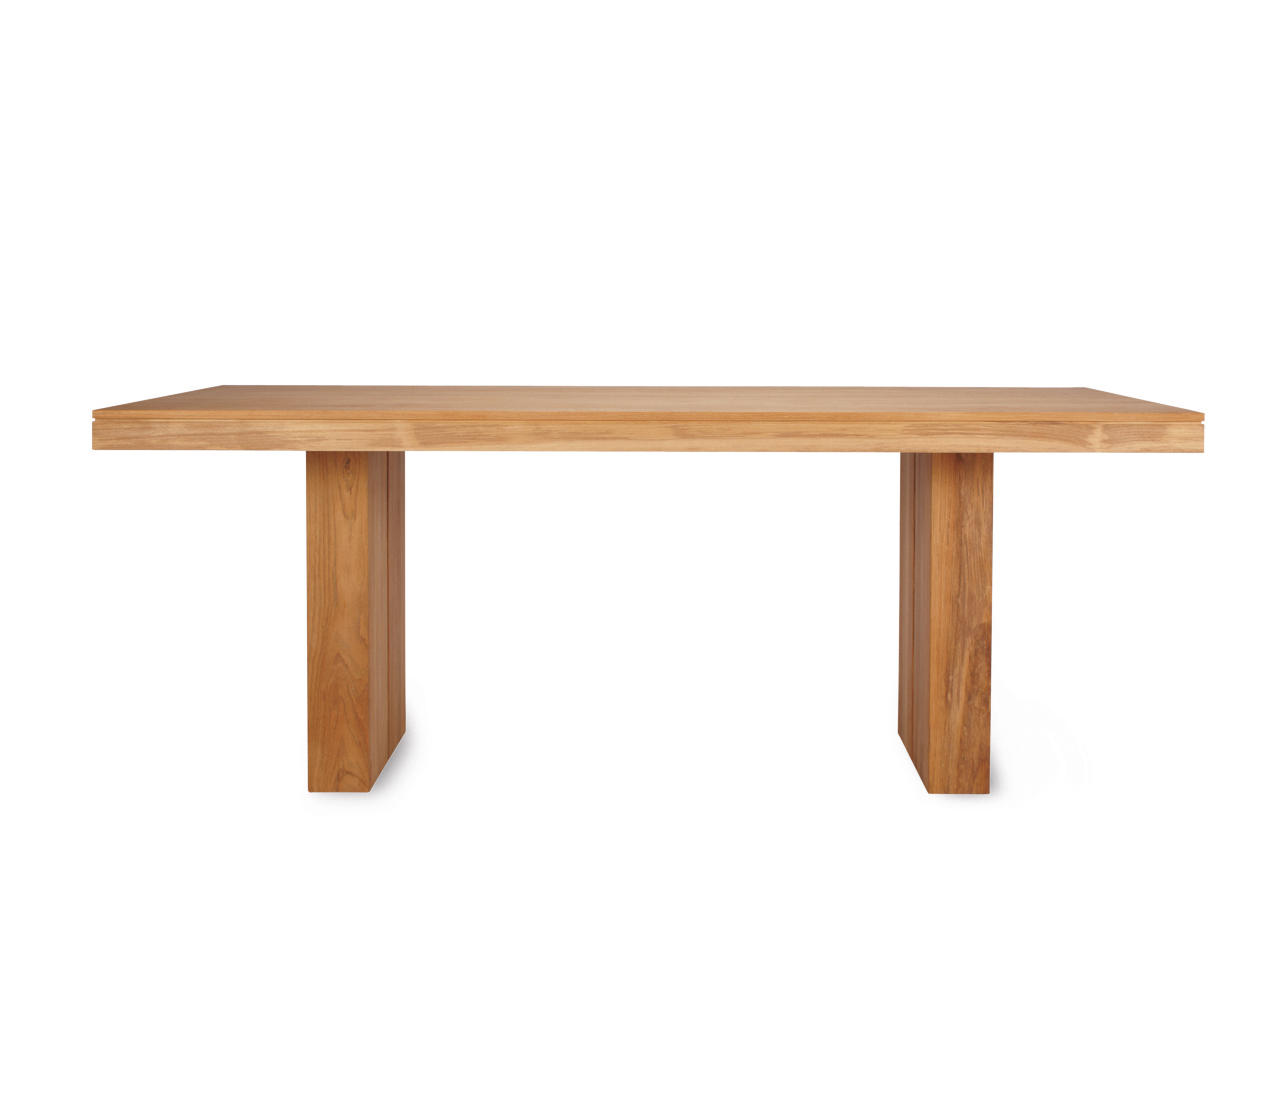 Kayu Teak Dining Table By Design Within Reach | Dining Tables